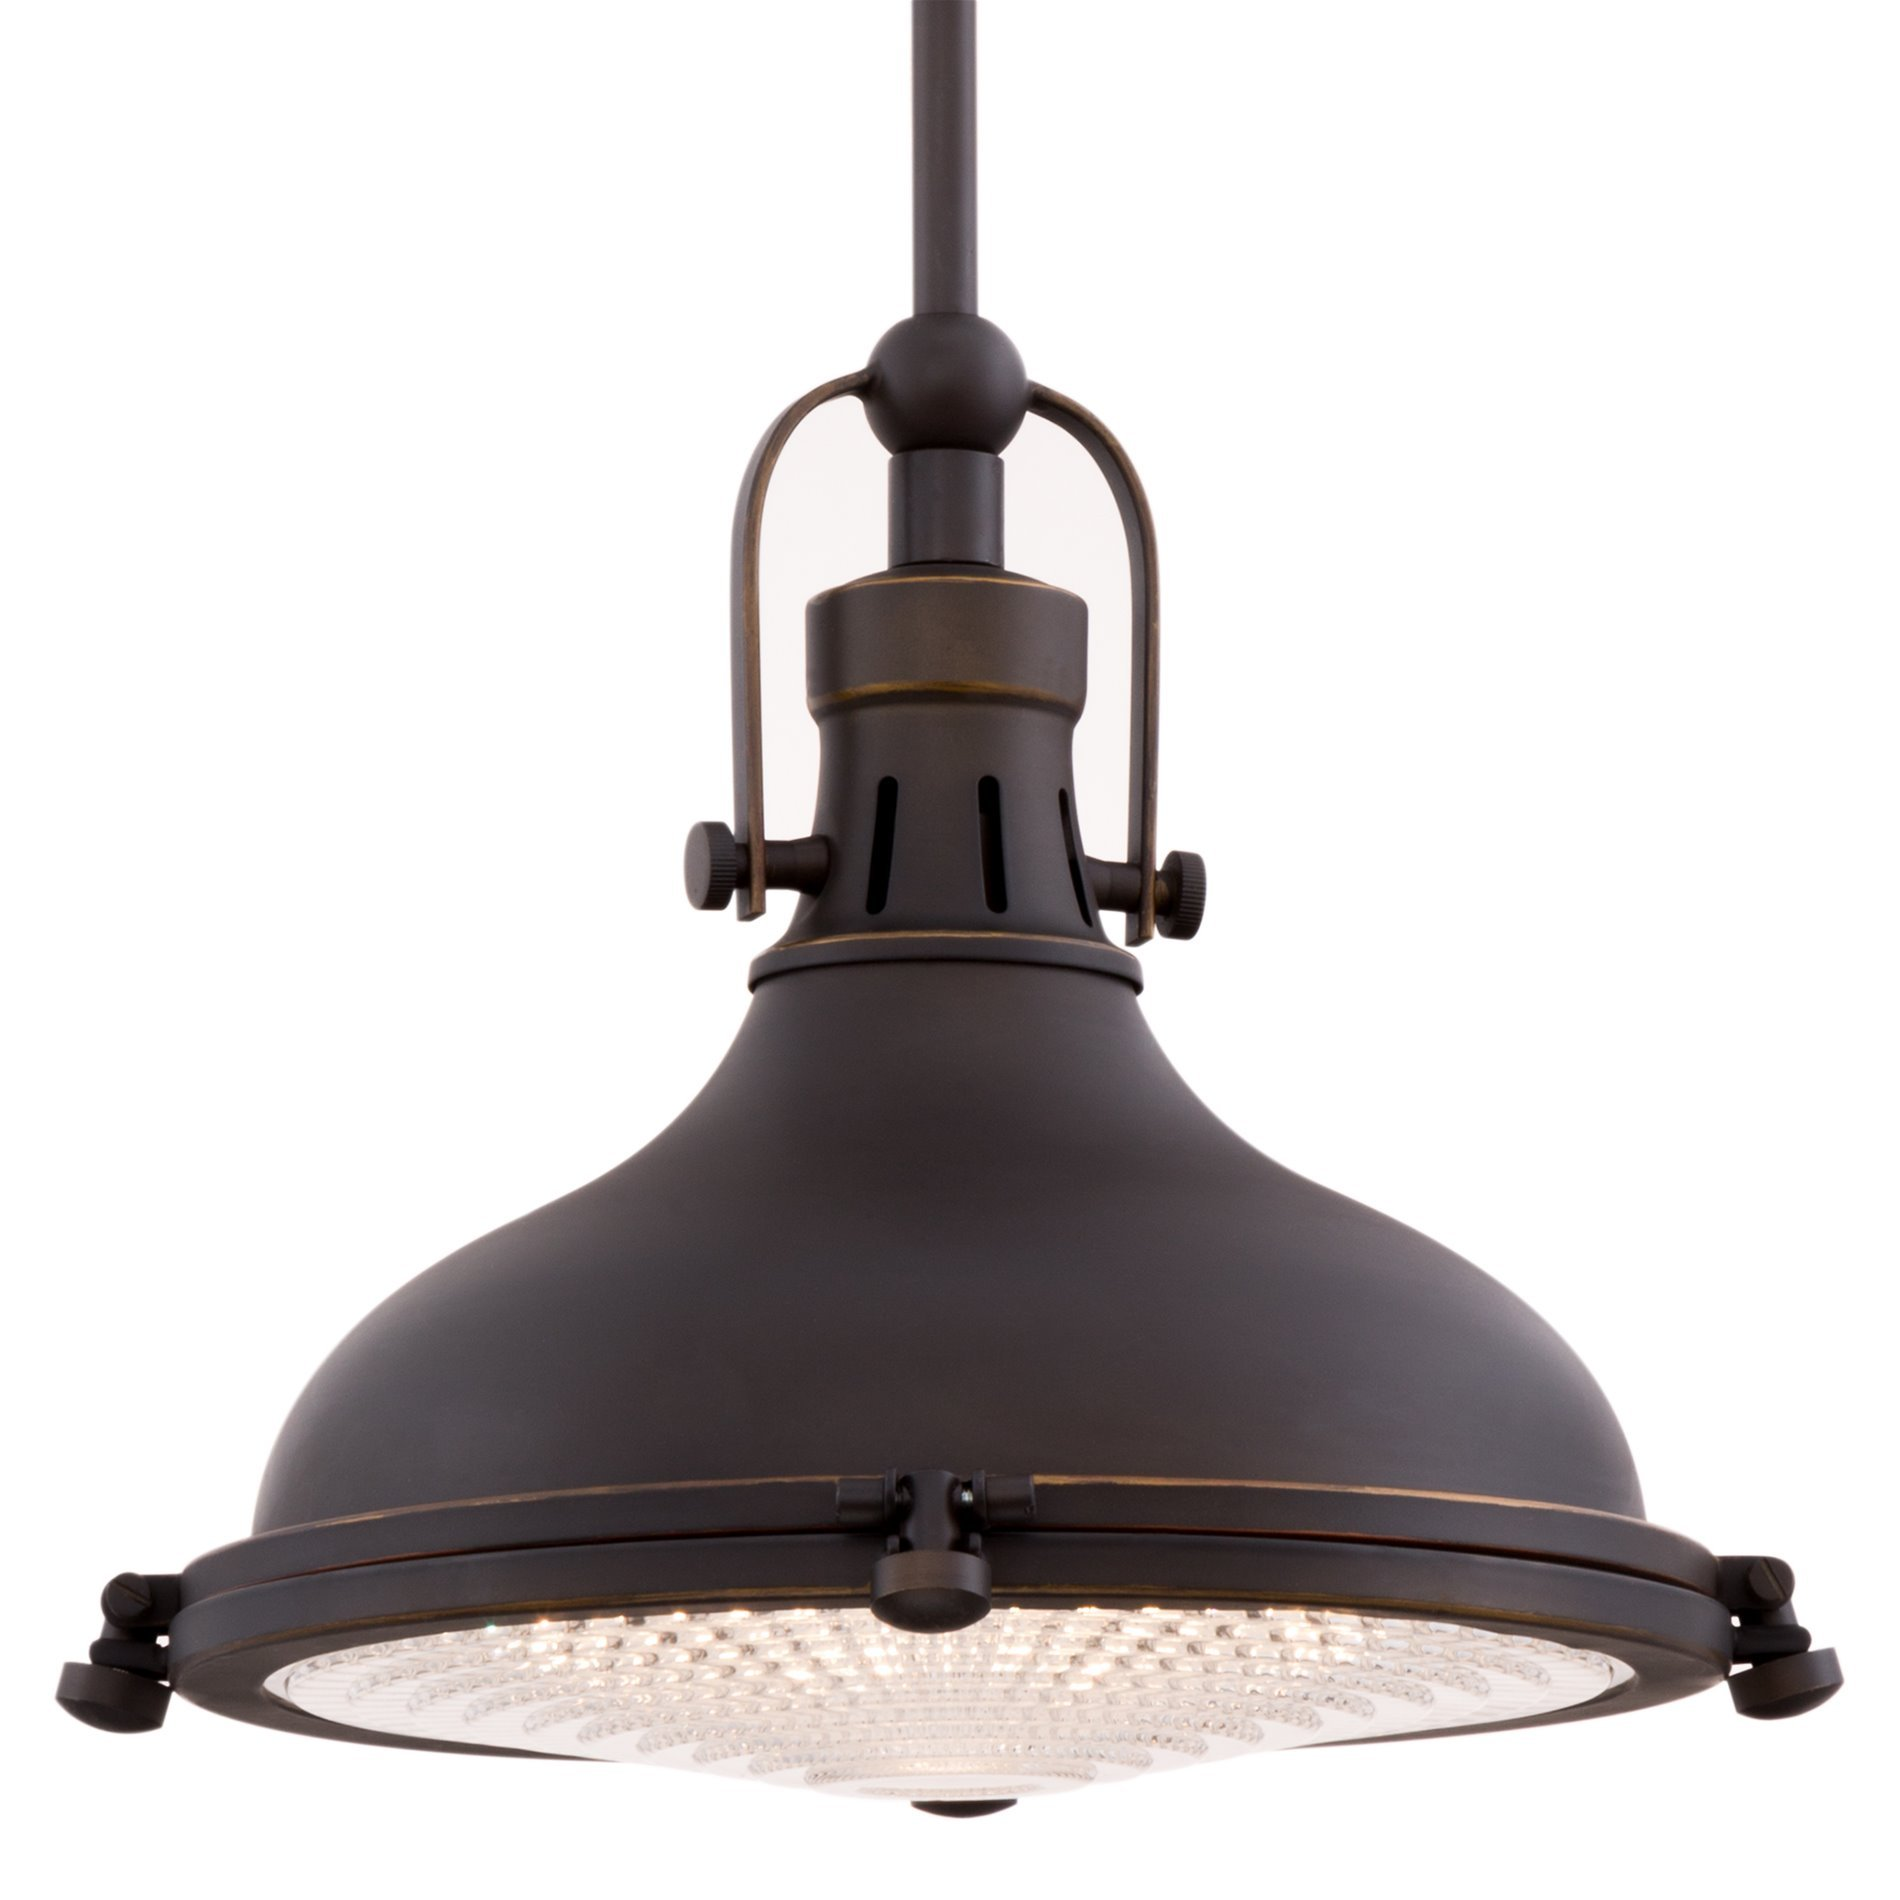 Revel Beacon 11'' Vintage Industrial Pendant Light with Fresnel Lens, Oil-Rubbed Bronze Finish by Revel